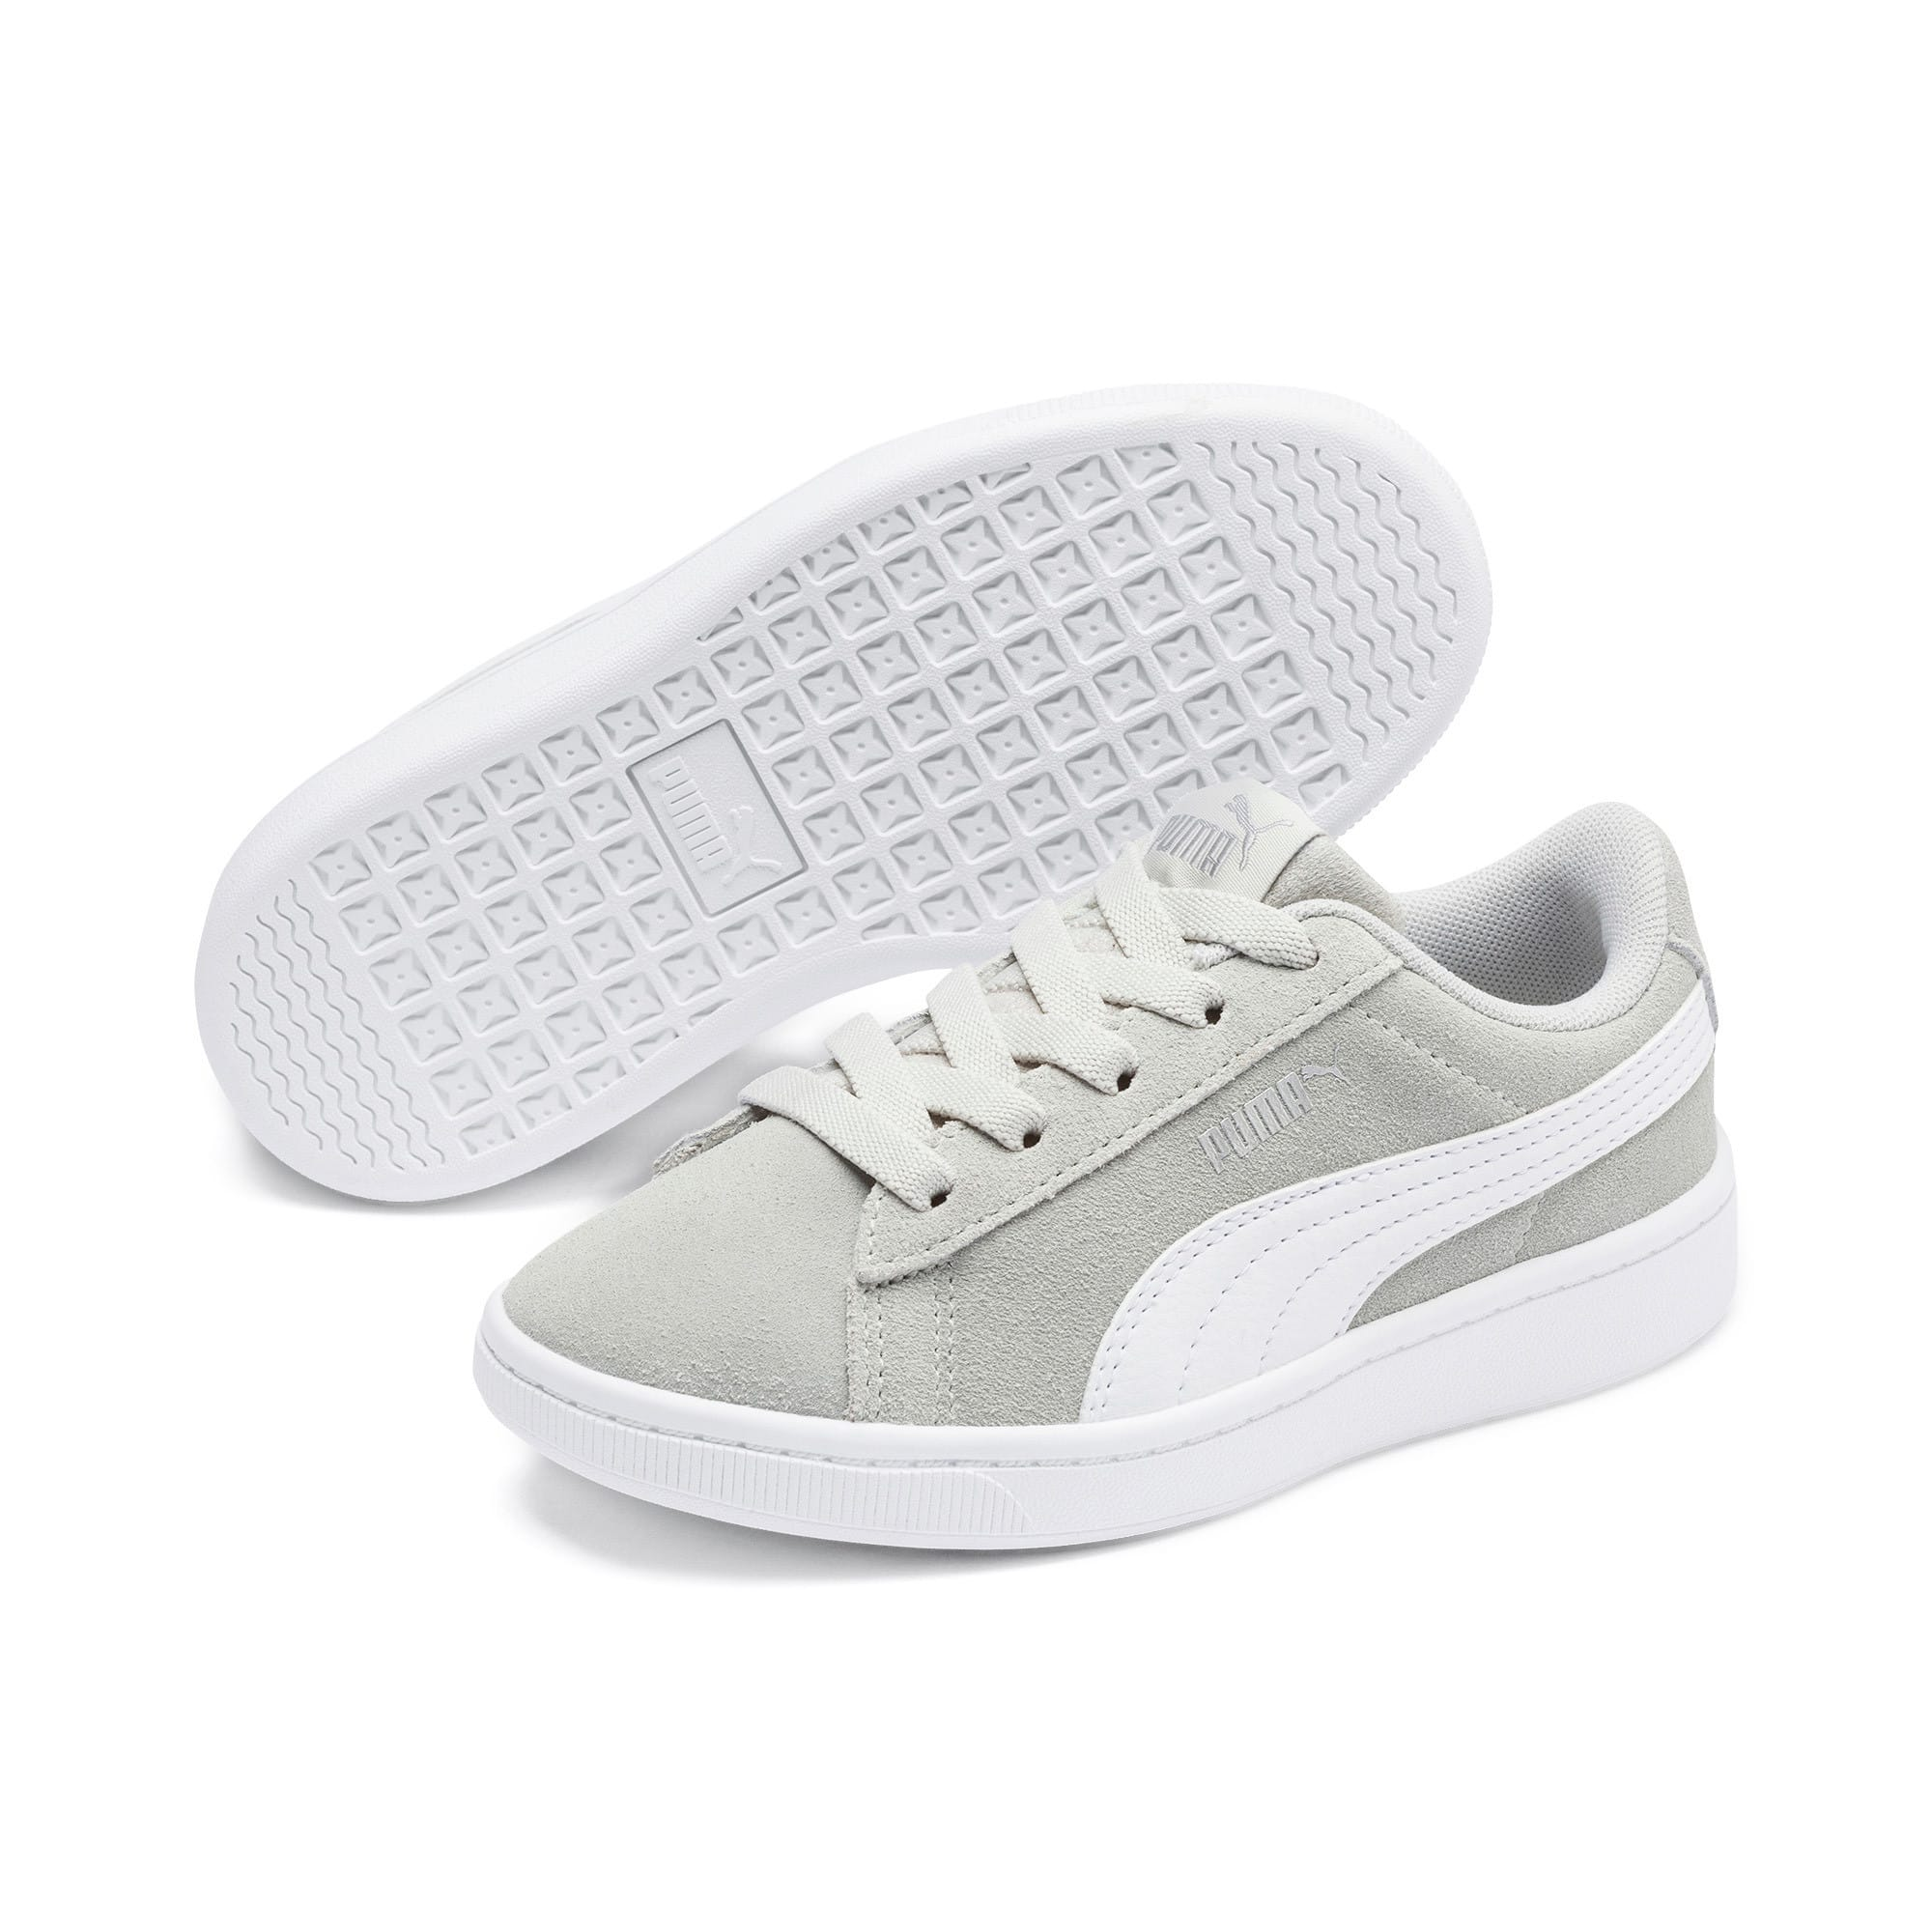 Thumbnail 2 of PUMA Vikky v2 Suede AC Sneakers PS, Gray Violet-White-Silver, medium